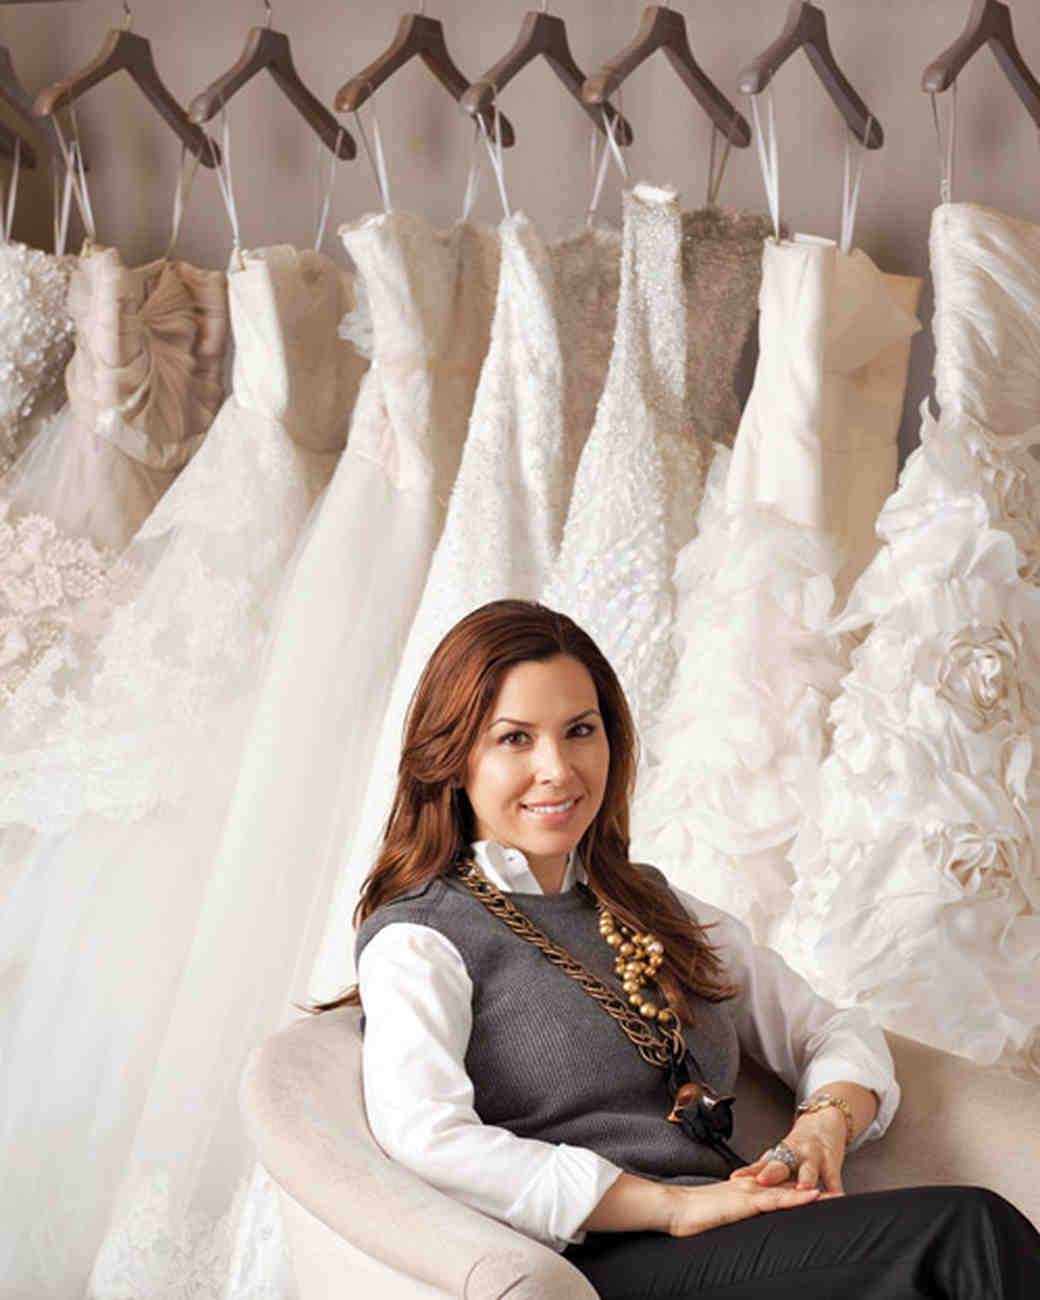 See Shapewear Thatus Worth Showing Off With Department Stores That Sell Wedding Dresses